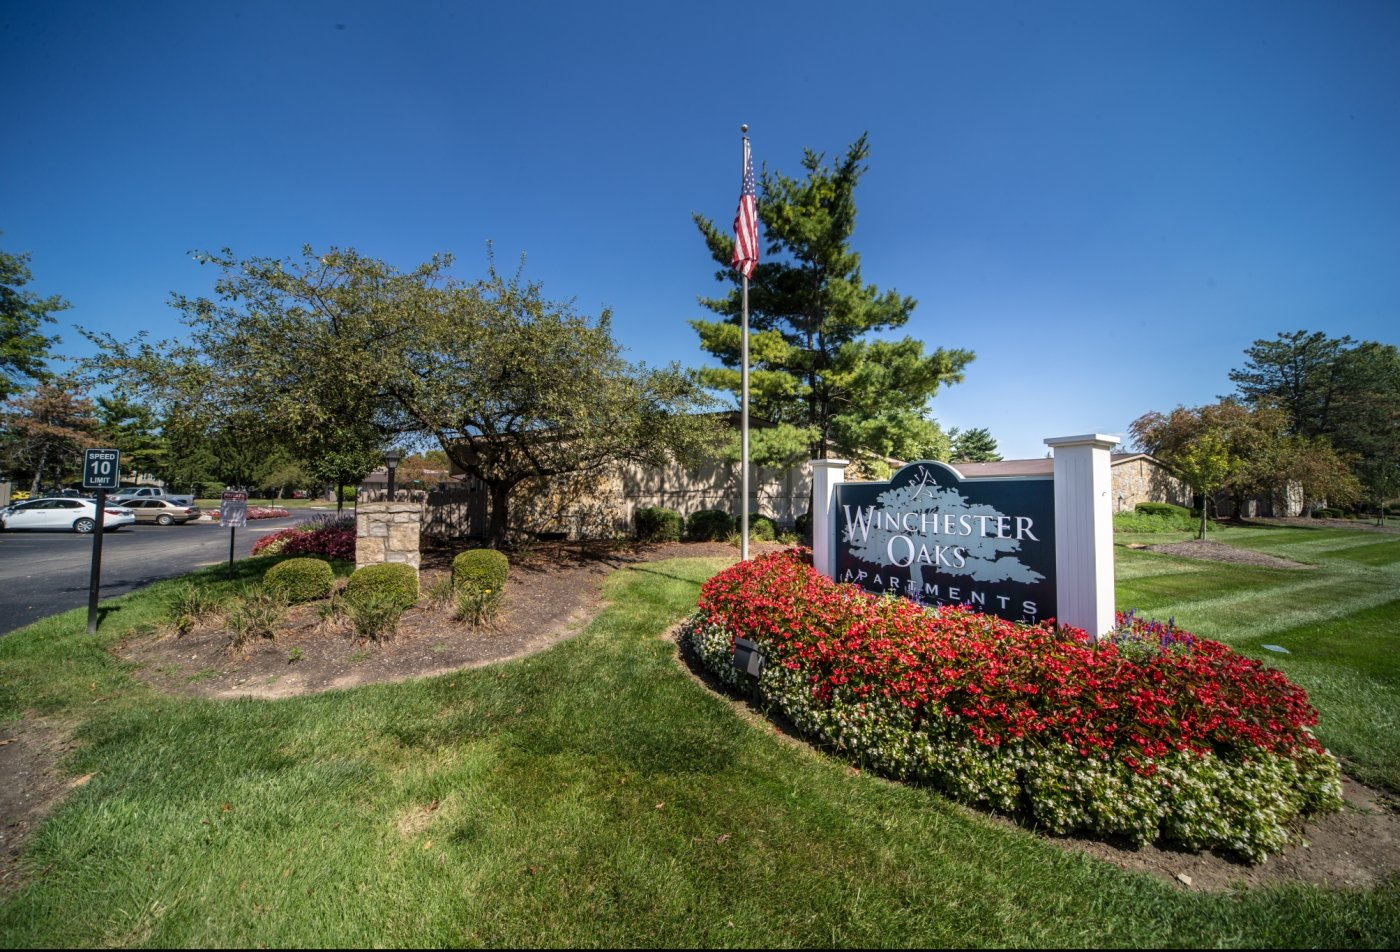 Winchester Oaks Apartments